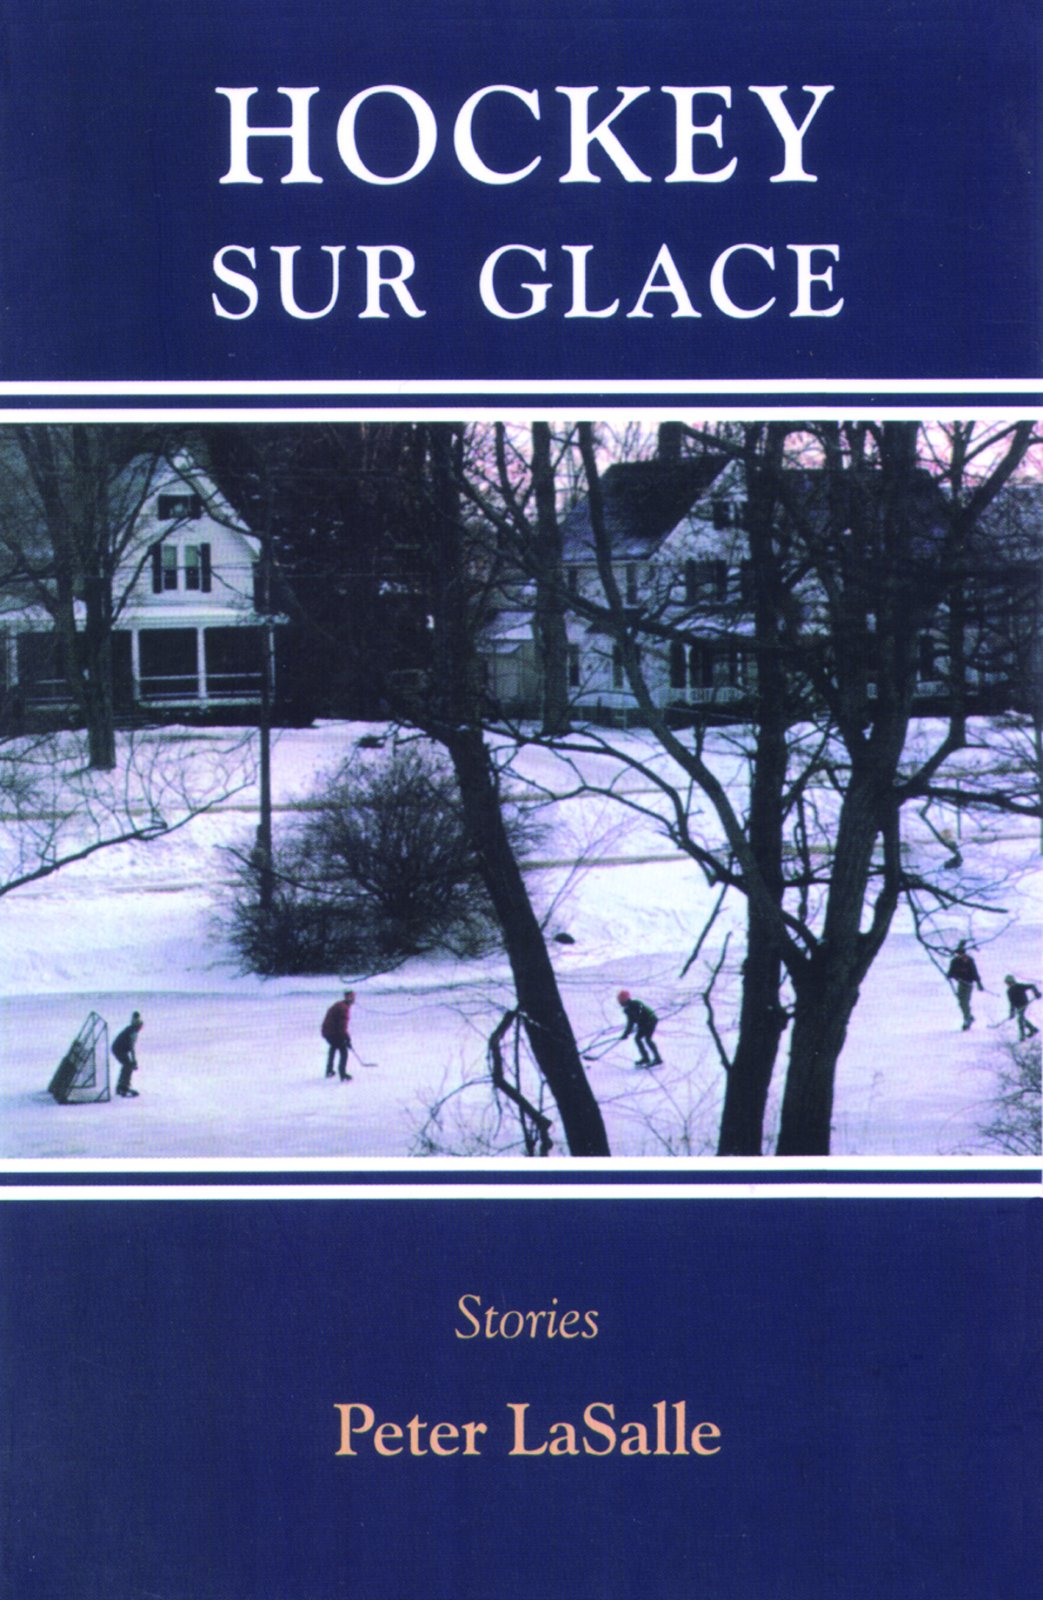 Hockey Sur Glace: Stories: Peter Lasalle: 9781891369001: Amazon: Books